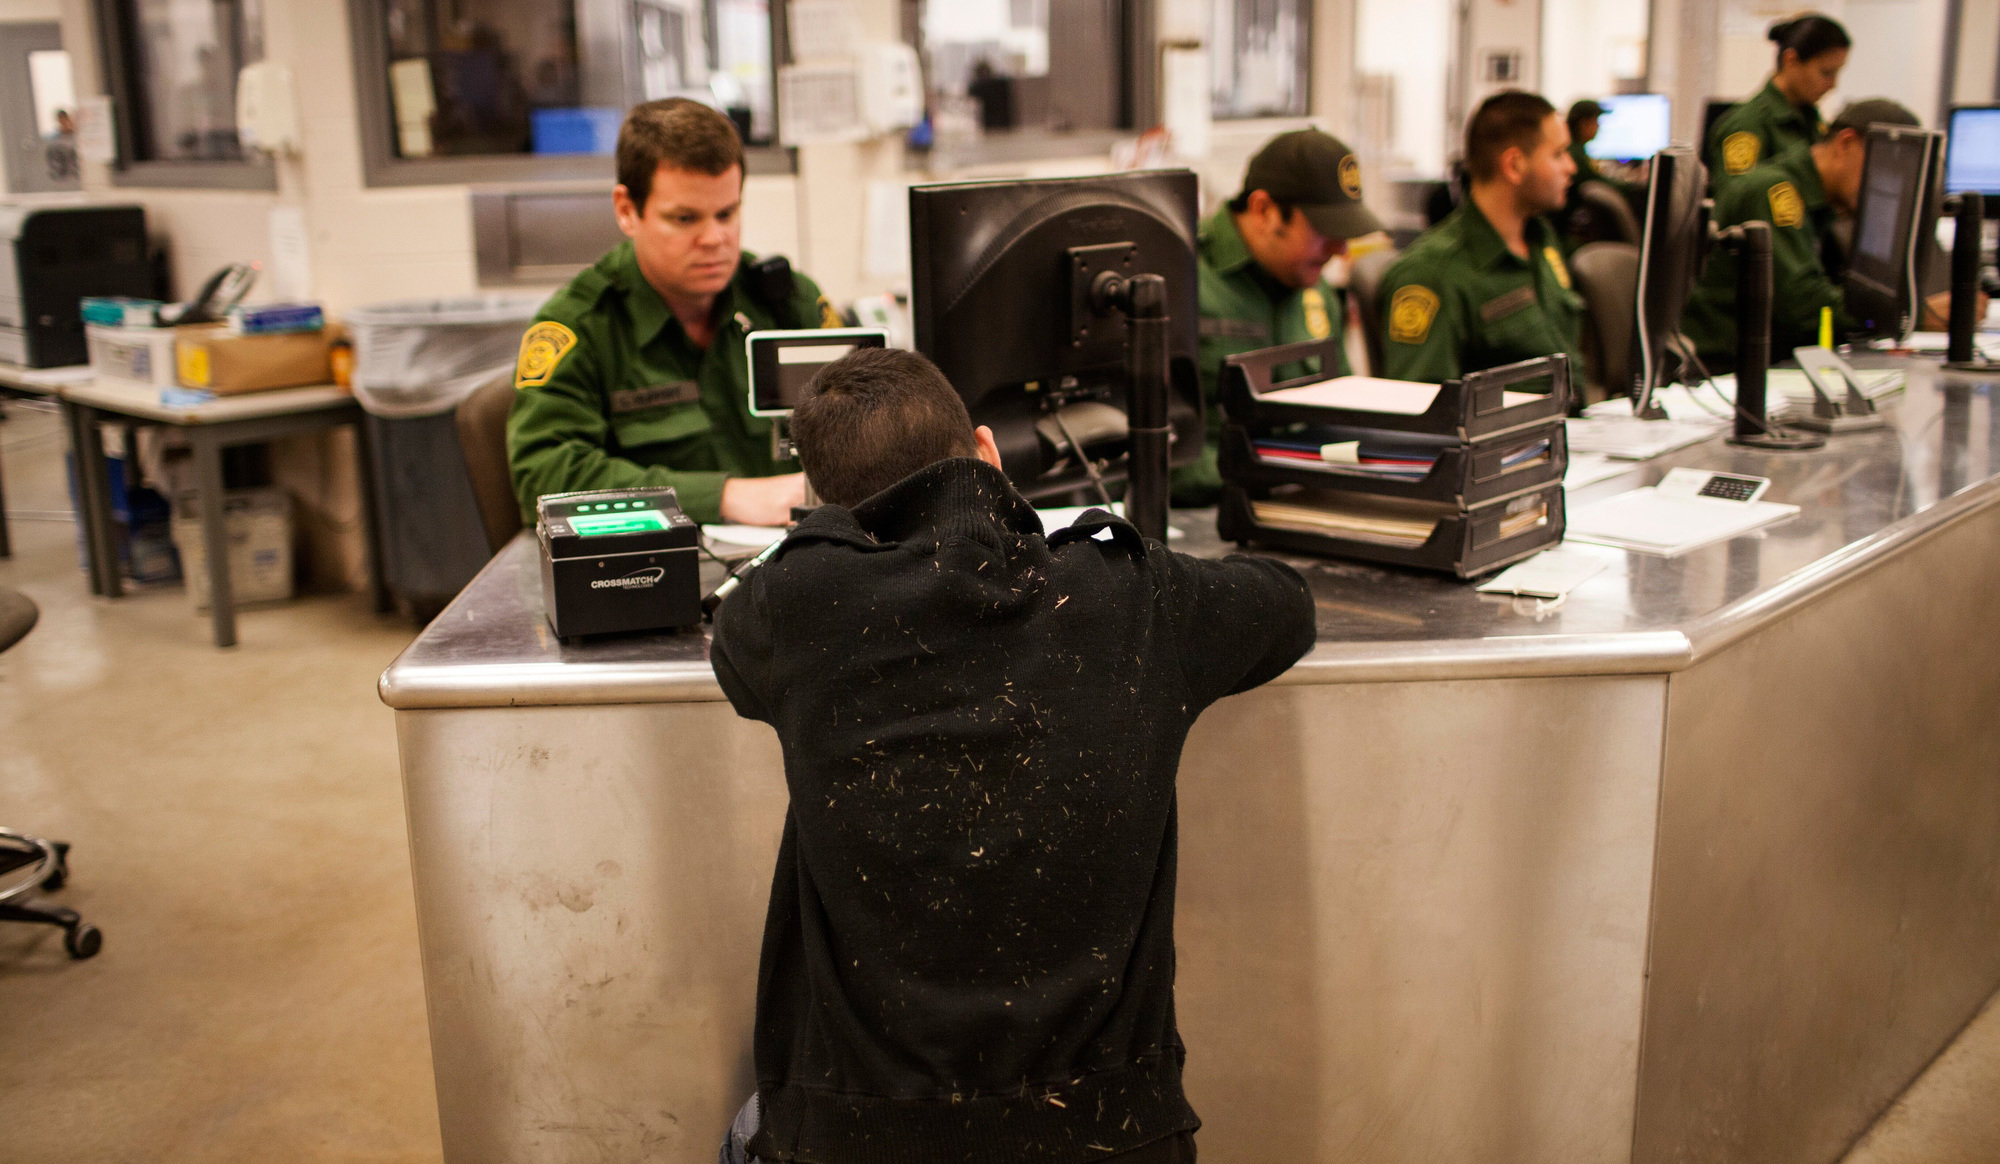 An unaccompanied boy from Guatemala is processed at the Customs and Border Protection Rio Grande Valley sector headquarters in Texas, in 2013.